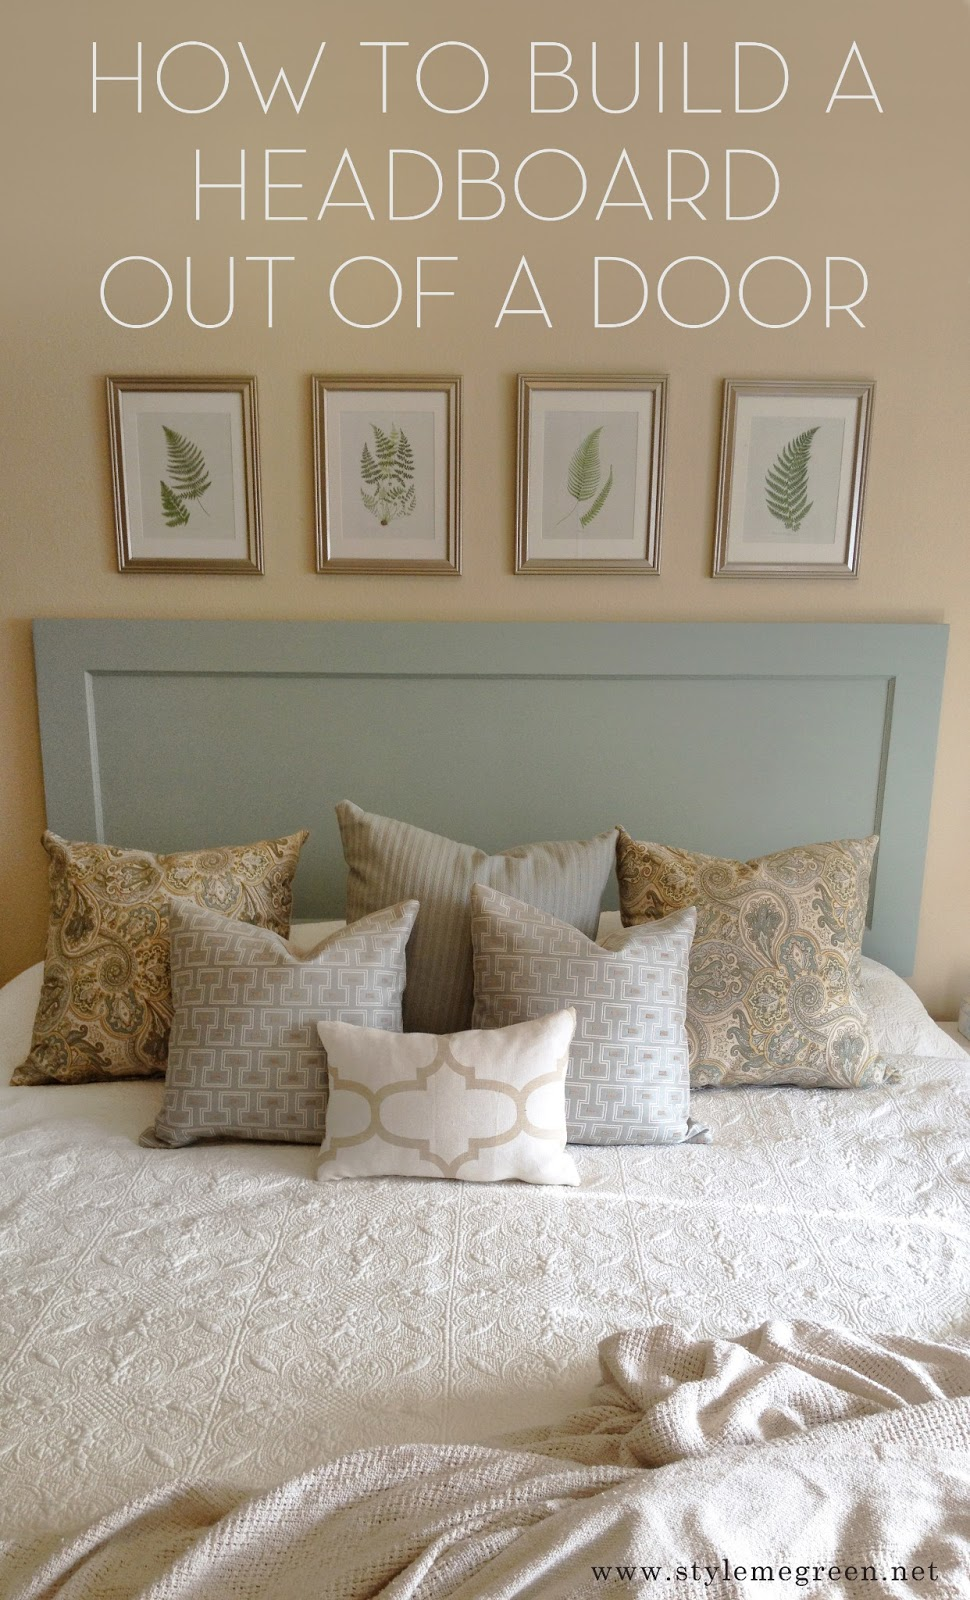 Make A Headboard 50+ outstanding diy headboard ideas to spice up your bedroom